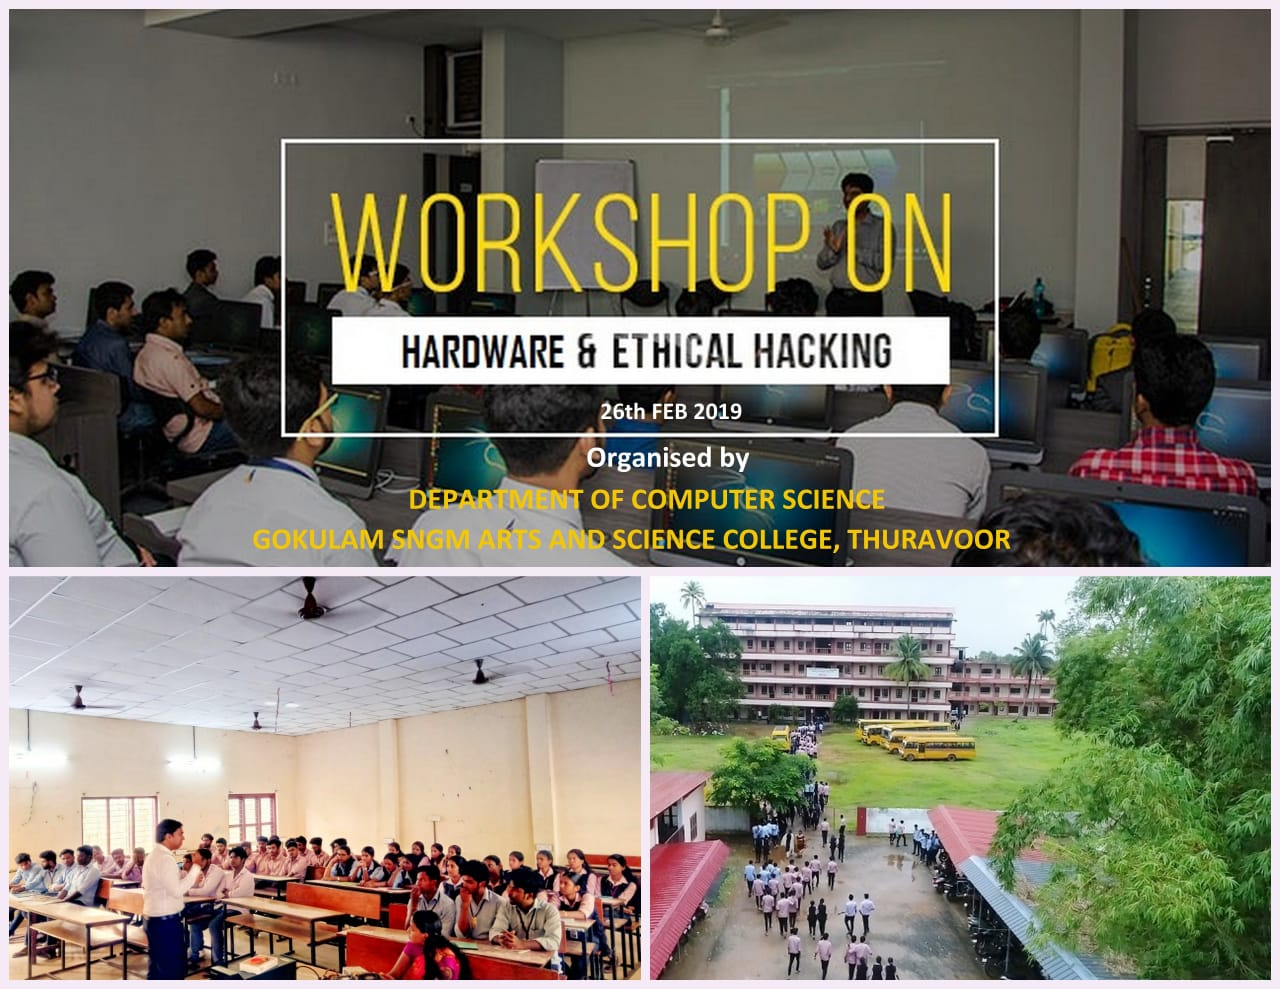 WORKSHOP ON HARDWARE & ETHICAL HACKING